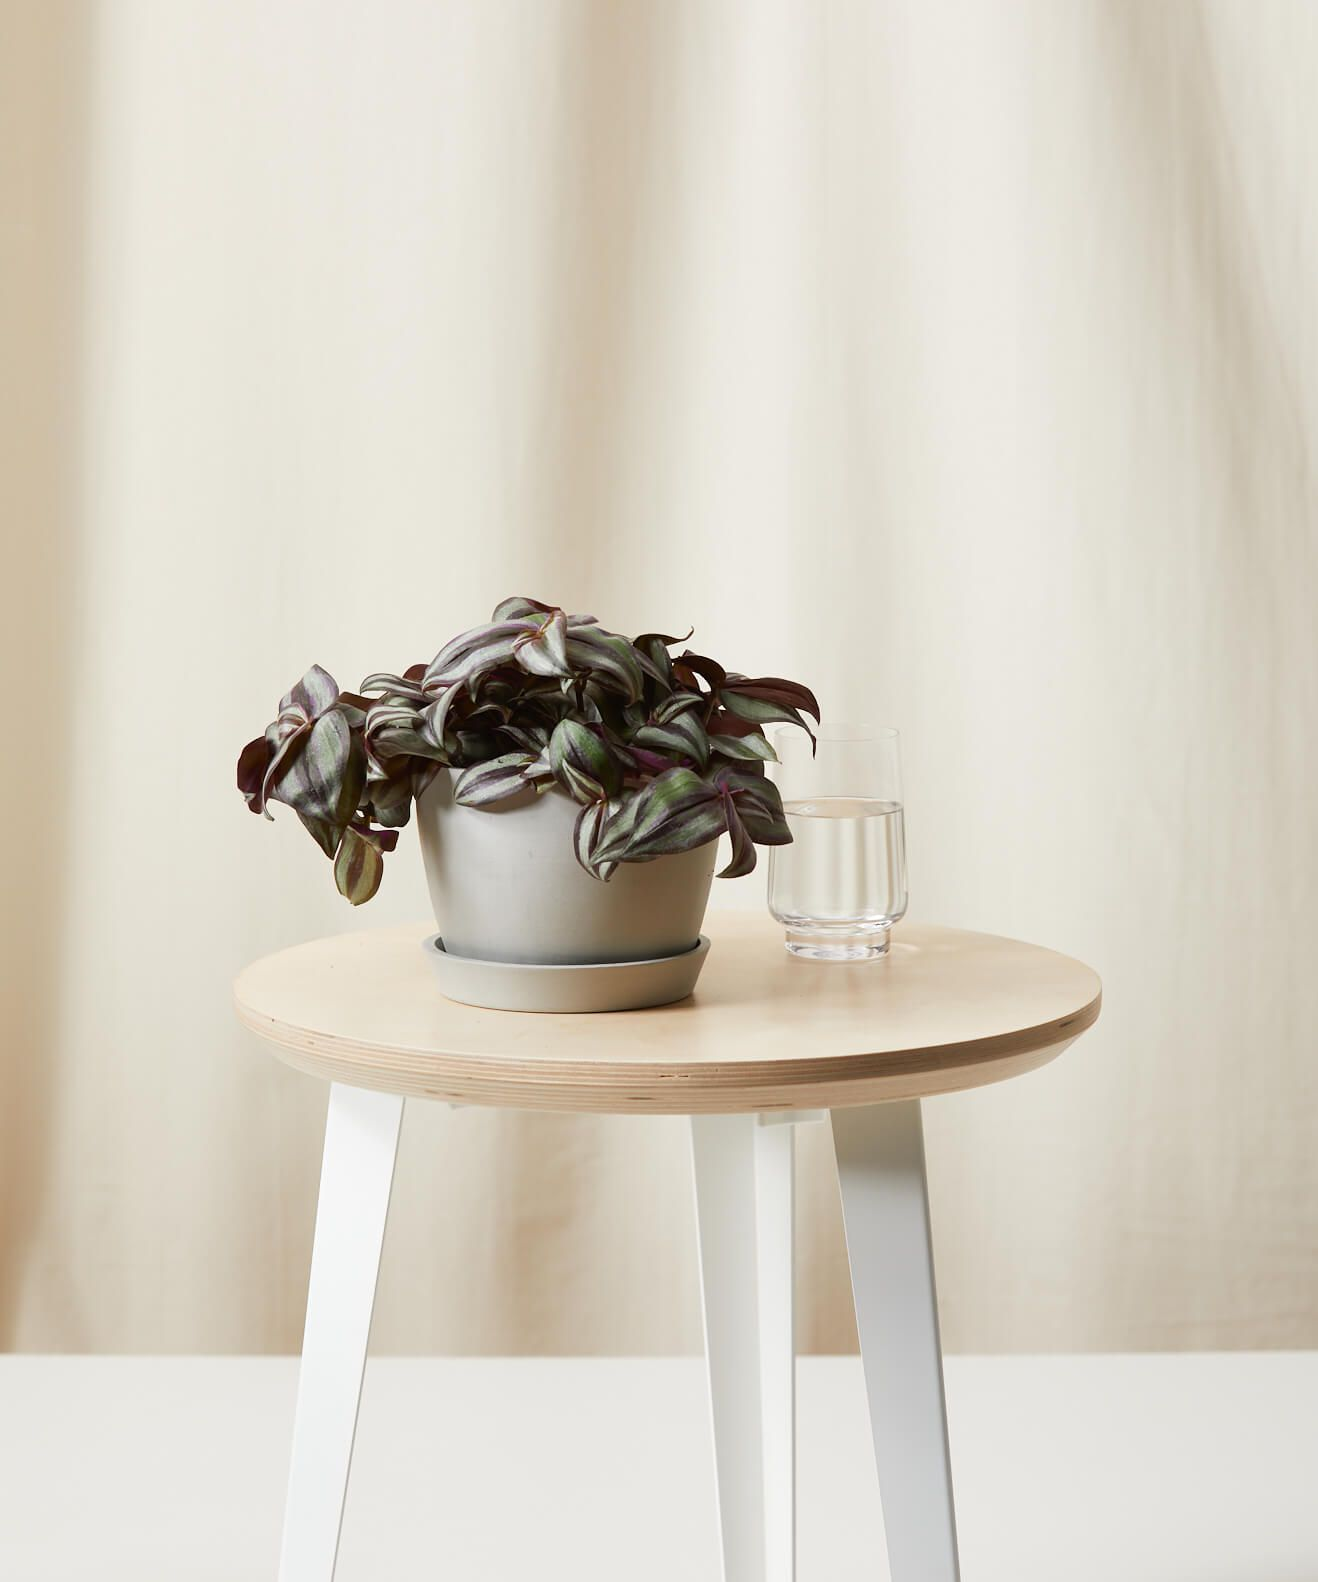 Inch plant in a gray pot on a wood stool